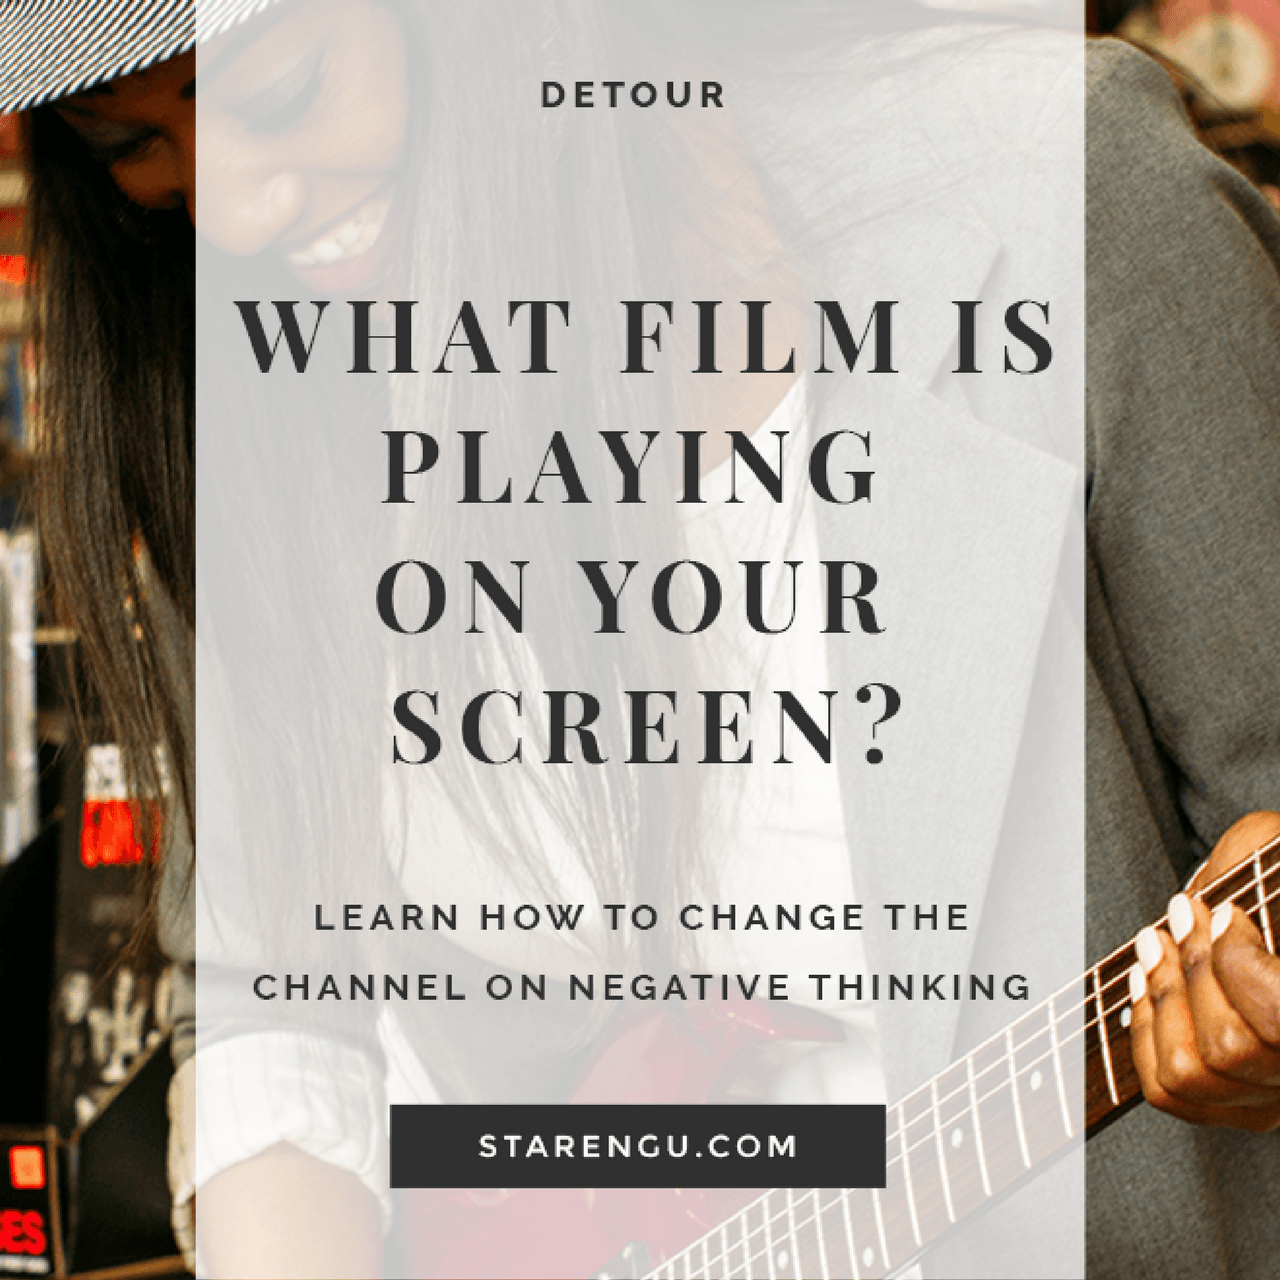 What Film Is Playing on Your Screen